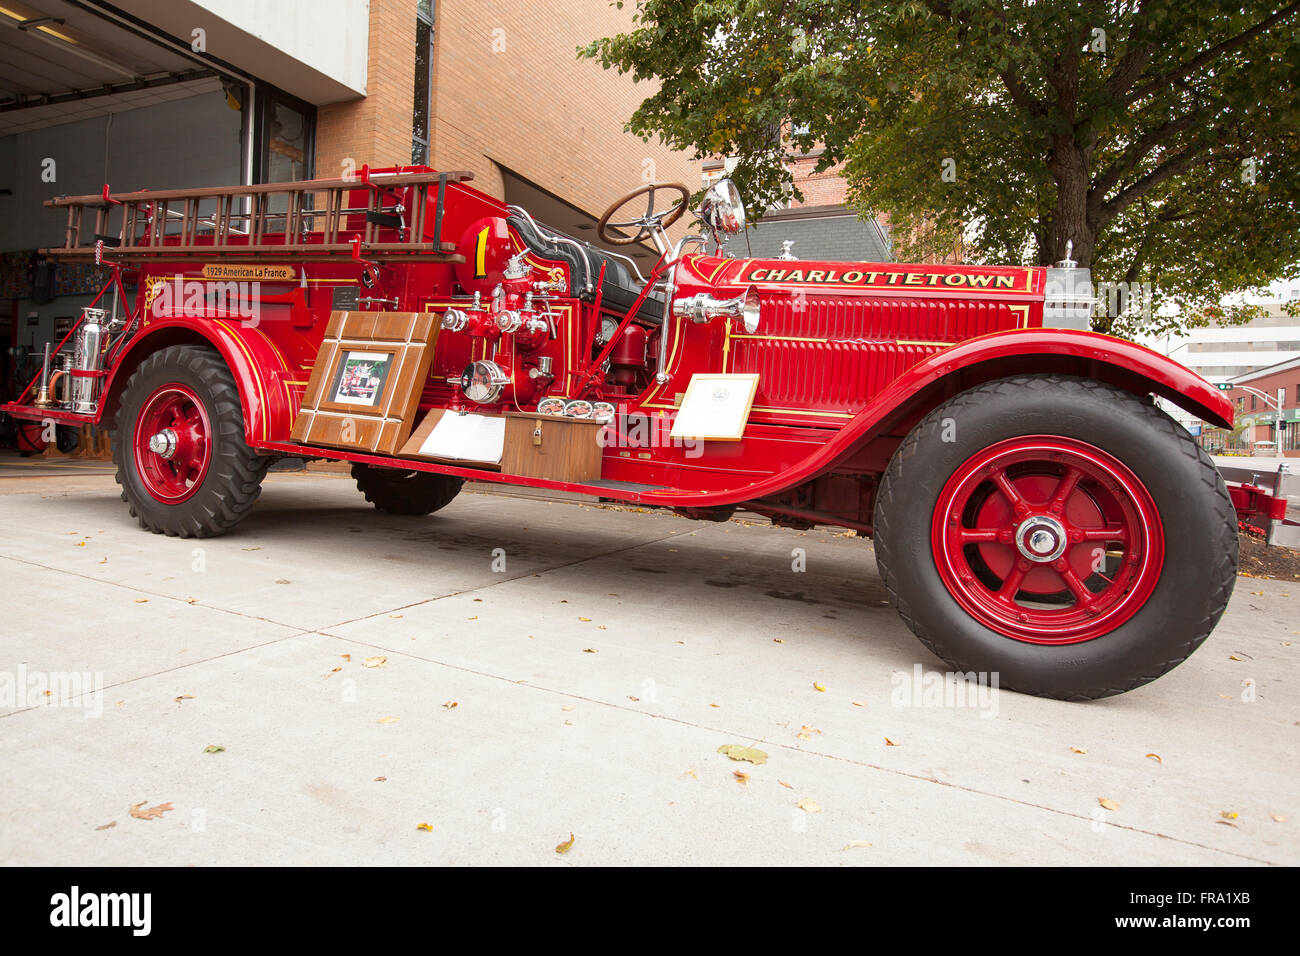 Charlottetown, PEI   SEPTEMBER 2, 2013: A Vintage Fire Truck Manufactured  By LaFrance